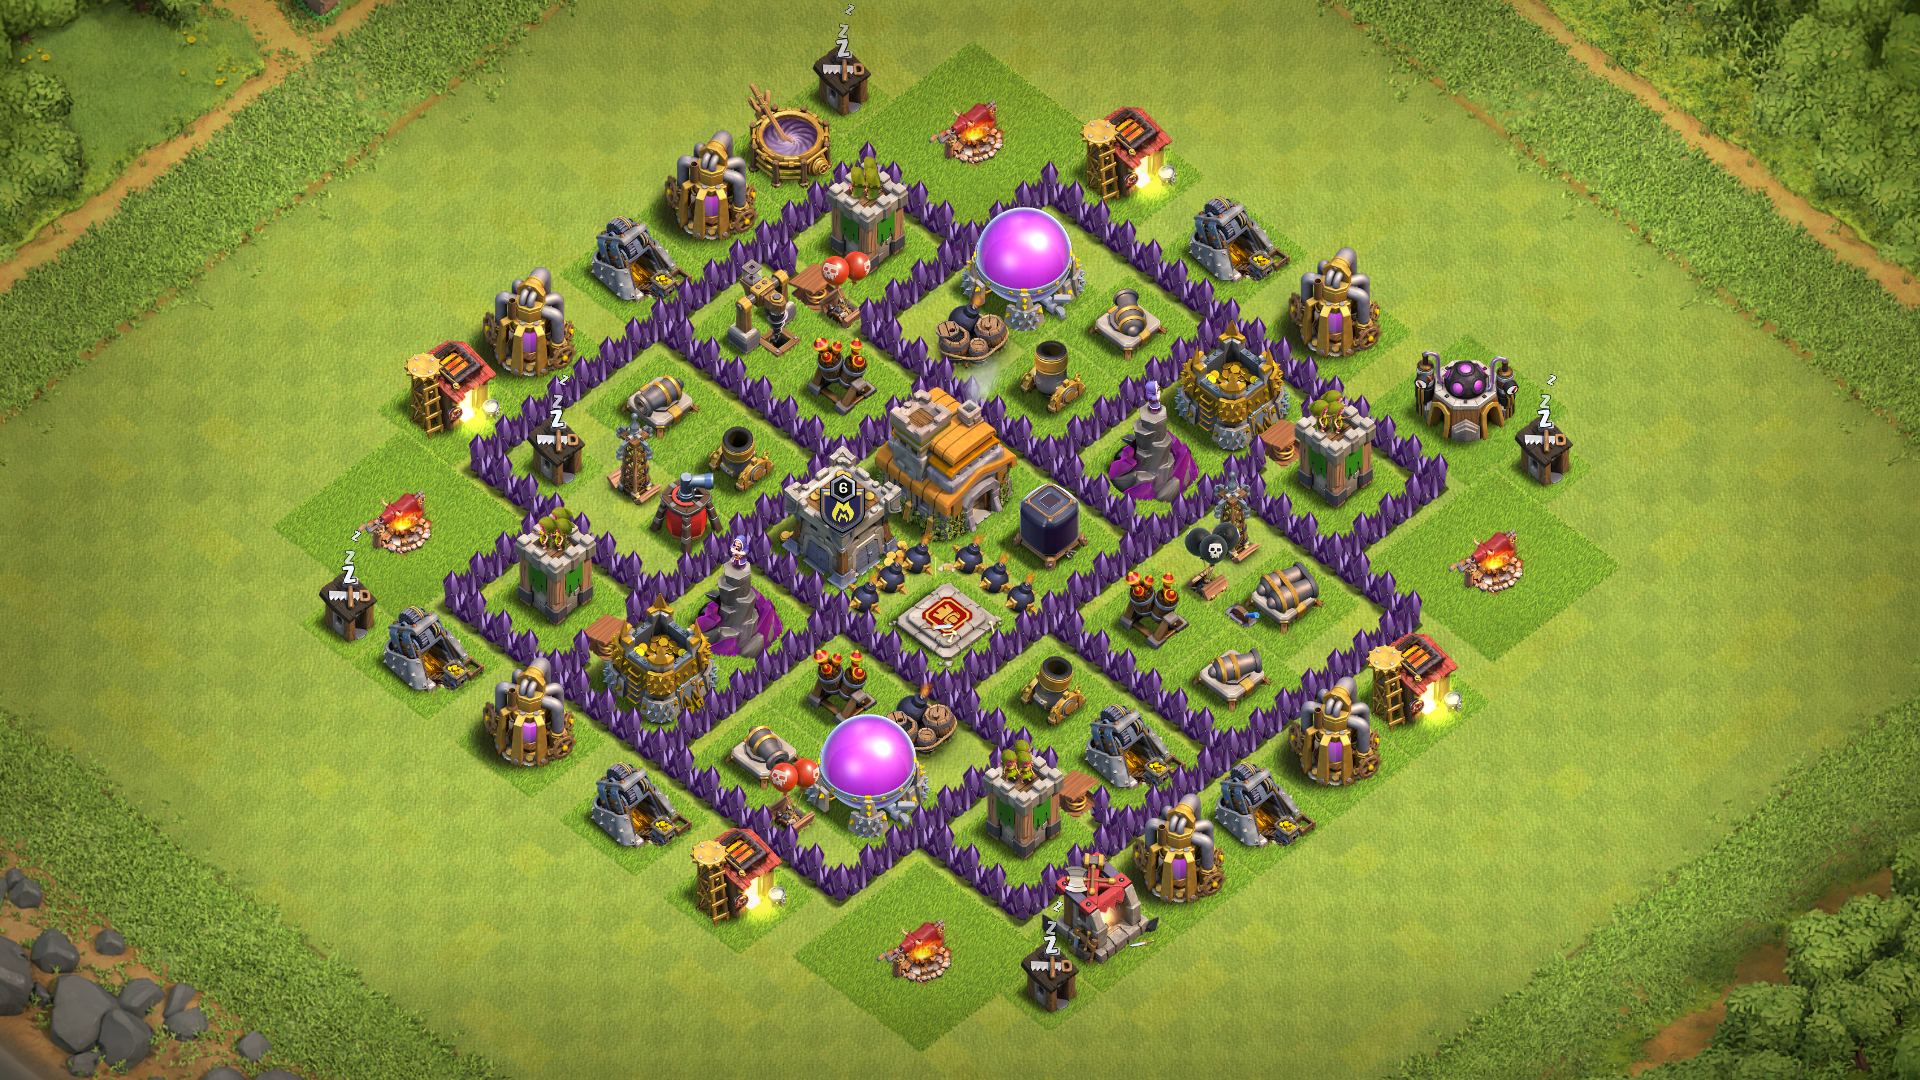 Th7 Base Layout With Base Copy Link